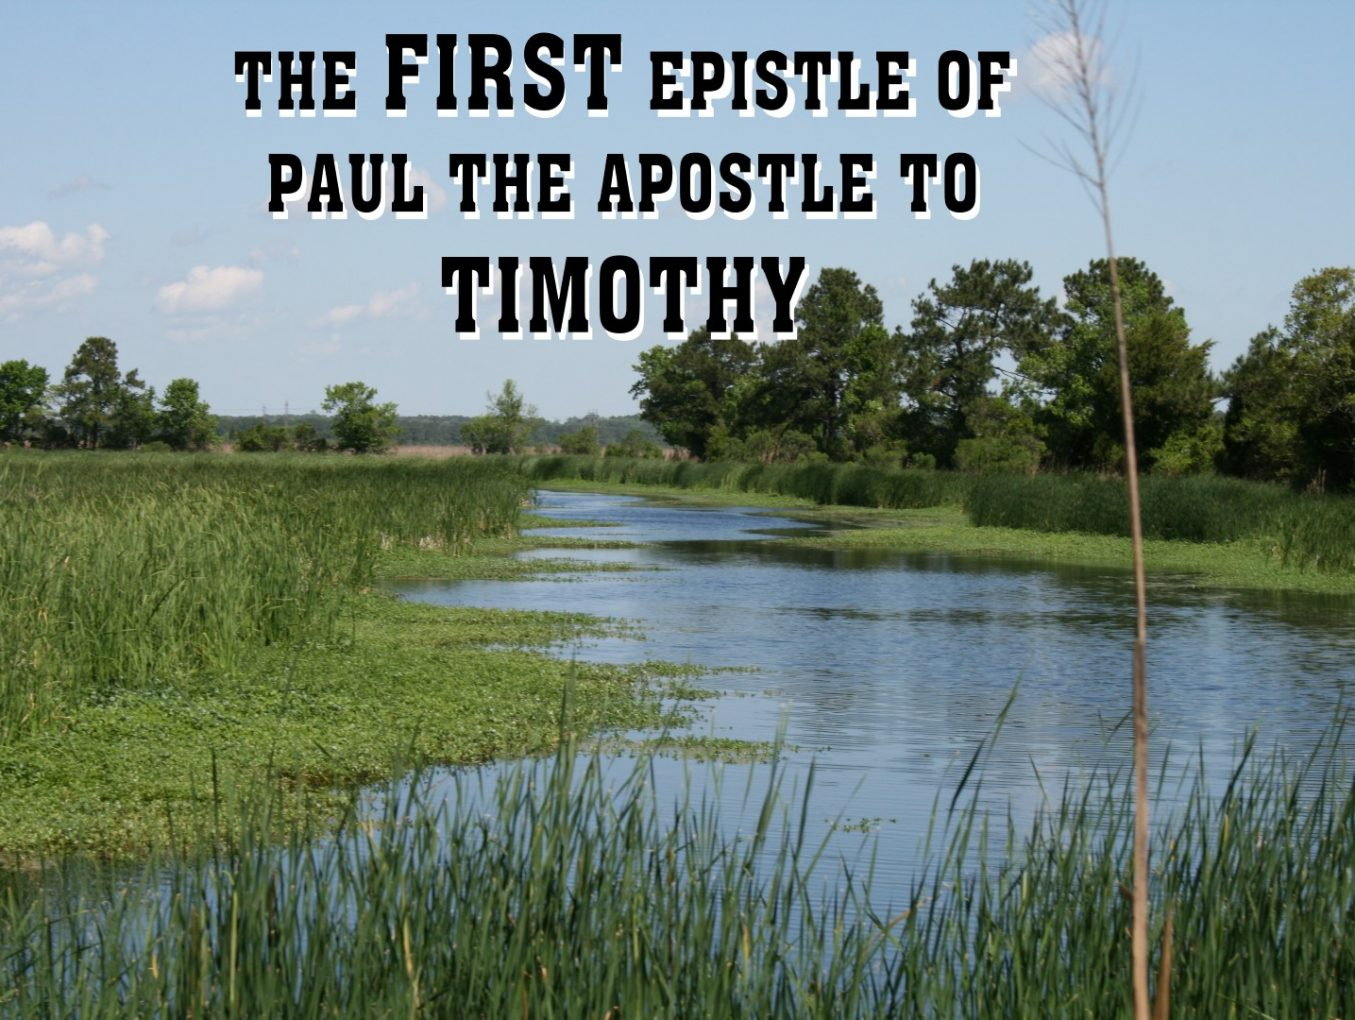 Men's Bible Study on 1 TIMOTHY (2011-12-13 to 2012-02-28)